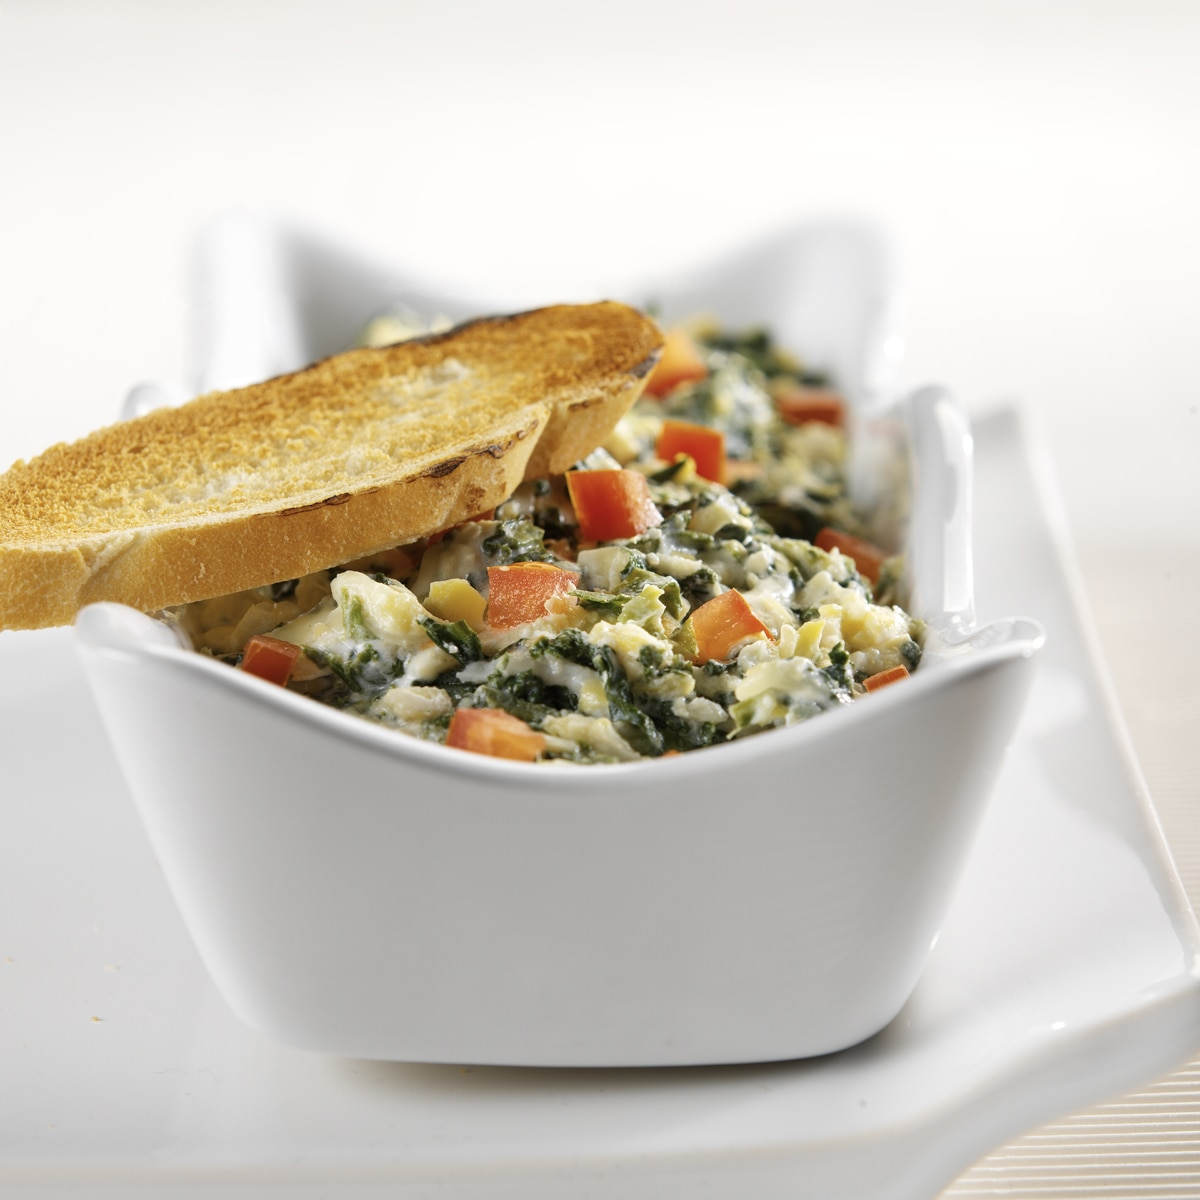 Preferential Spinach Artichoke Dip Healthy Substitutions1 Substitute Cloves Cloves Cooking Pumpkin Pie Recipe Substitute houzz-02 Substitute For Cloves